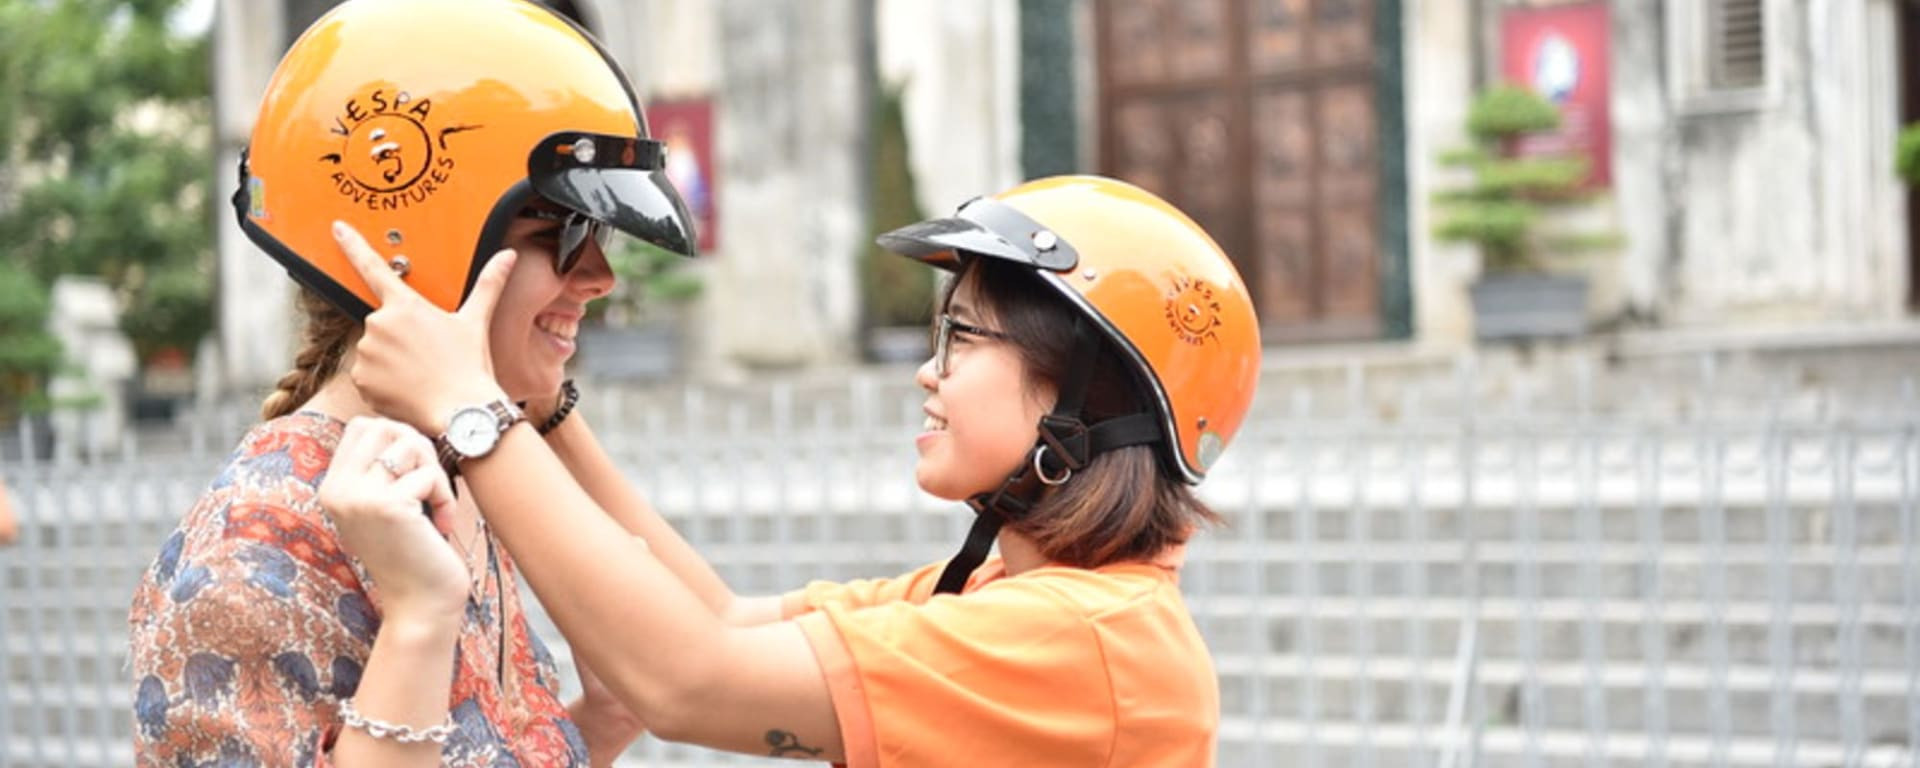 Vespa Streetfood Tour in Saigon: Saigon Vespa Tour